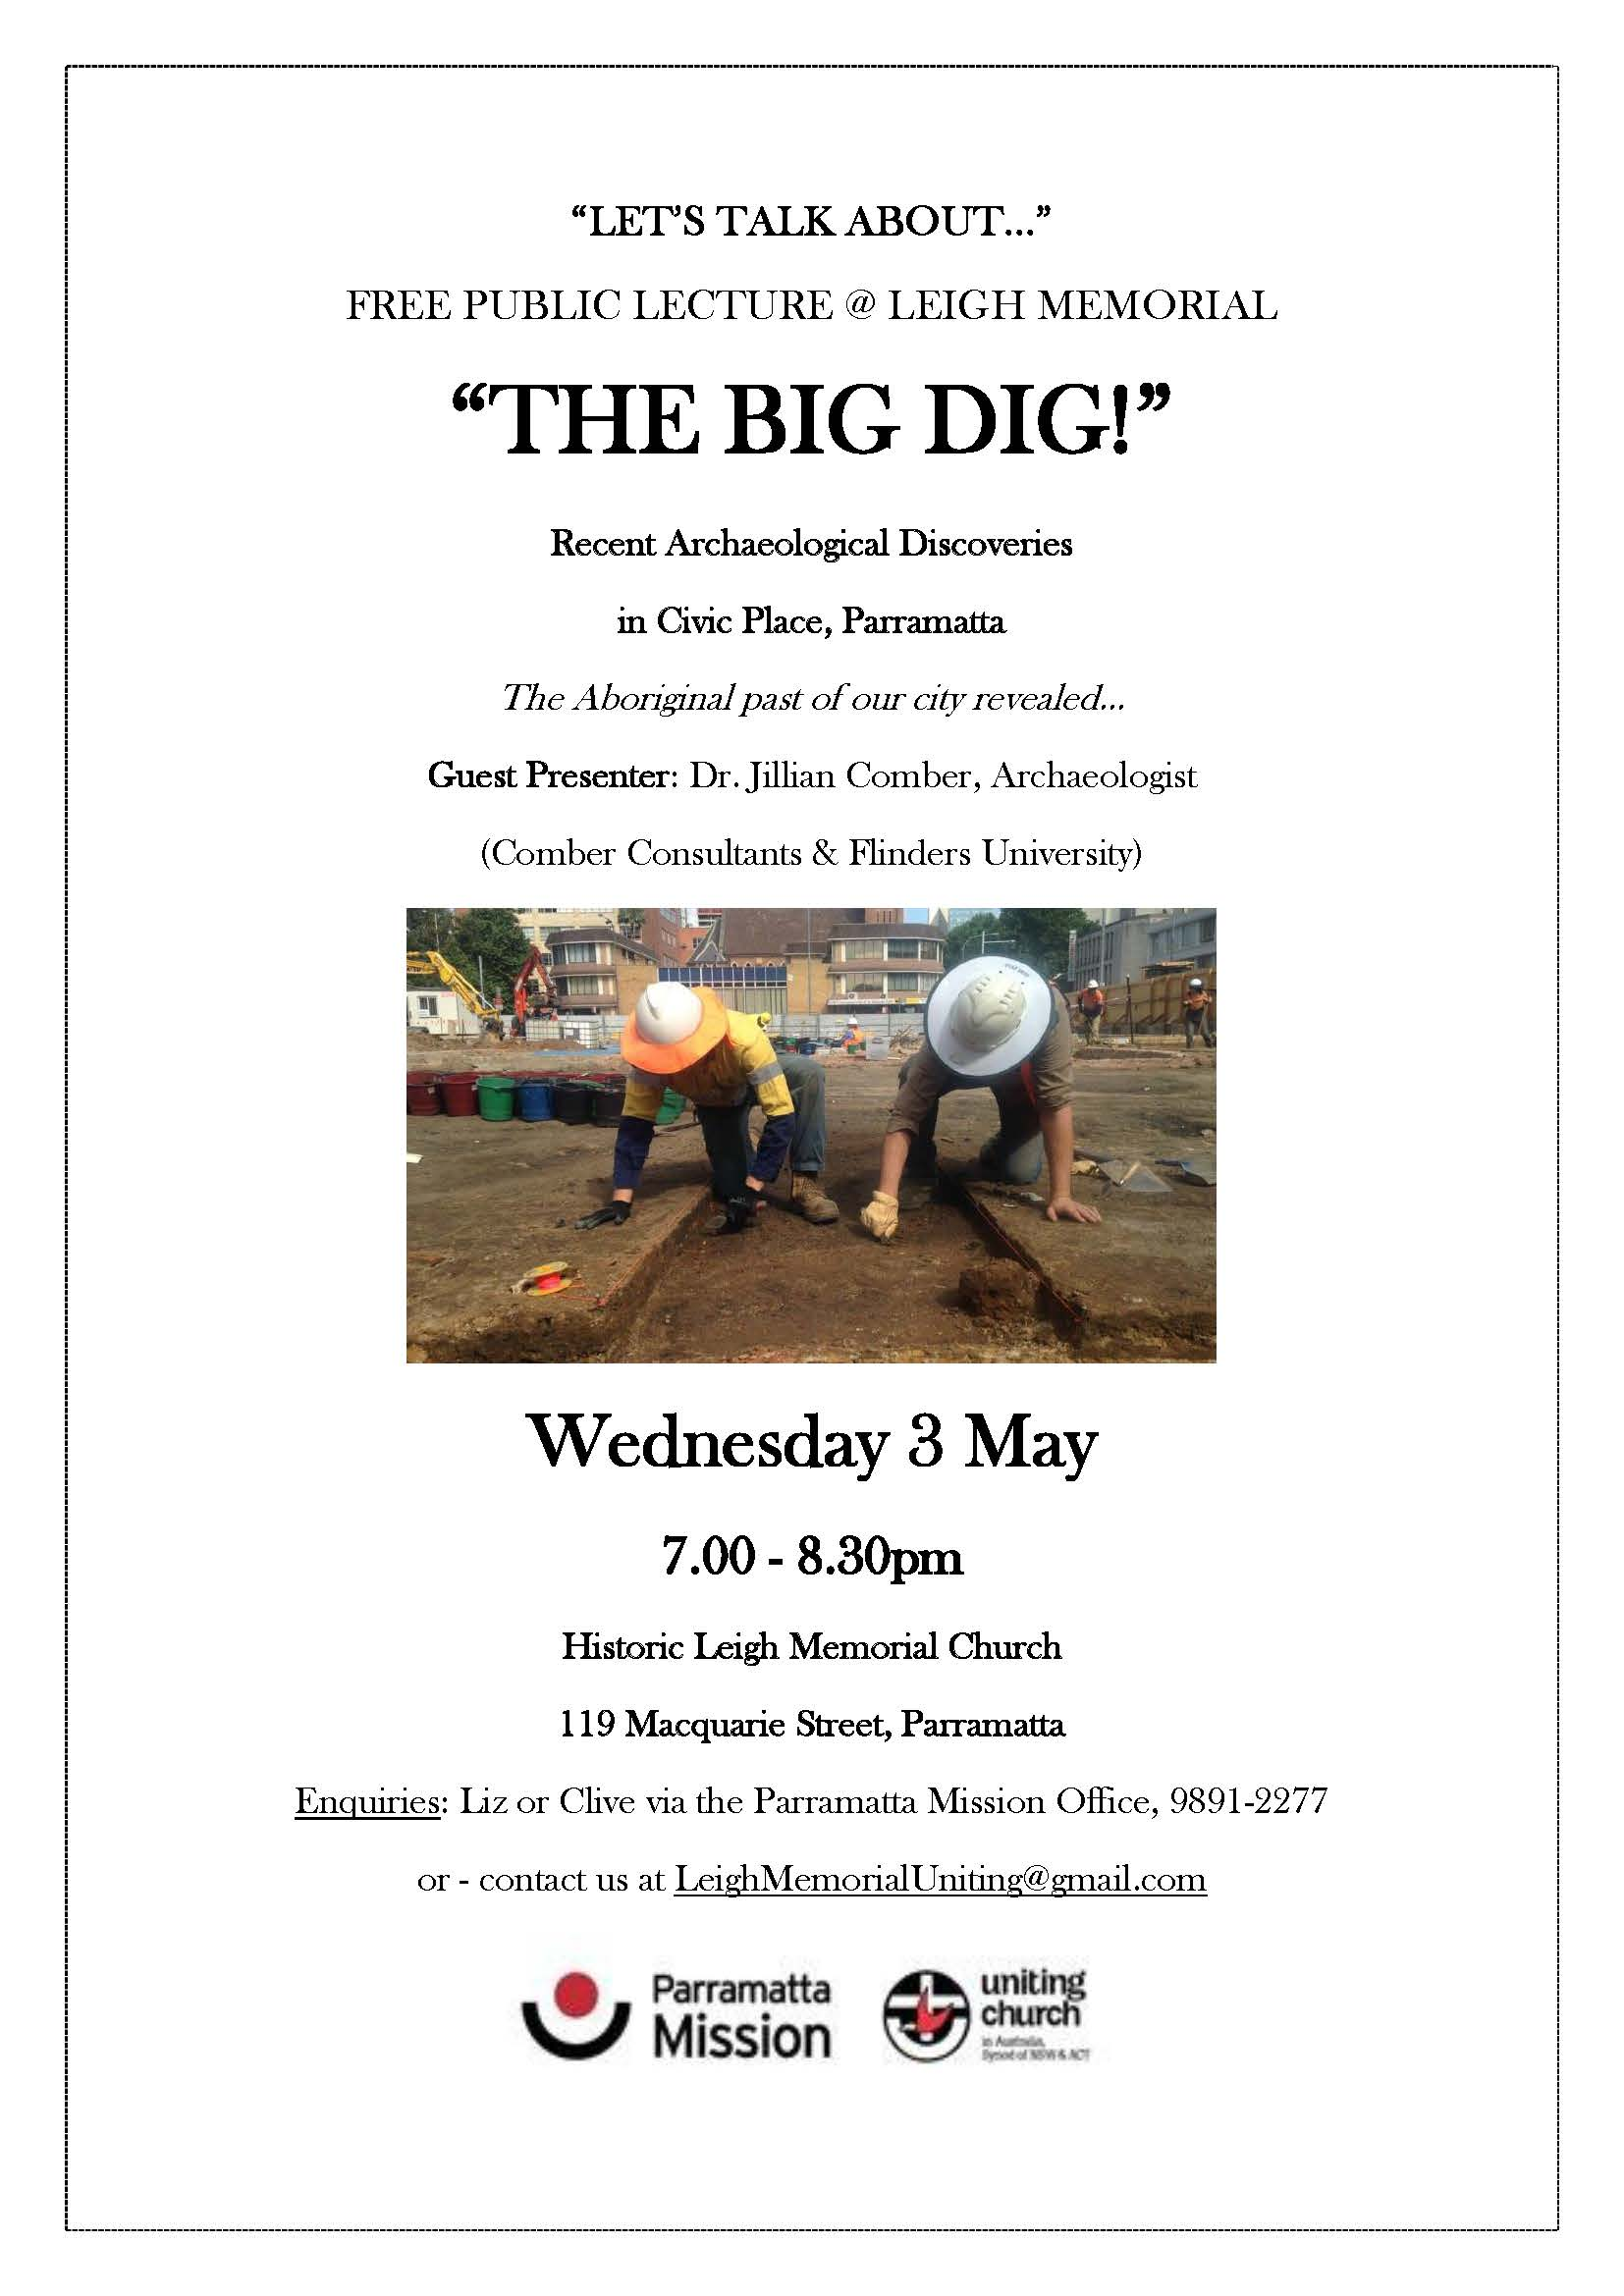 SPECIAL EVENT - THE BIG DIG docx UPDATED VERSION docx (A)